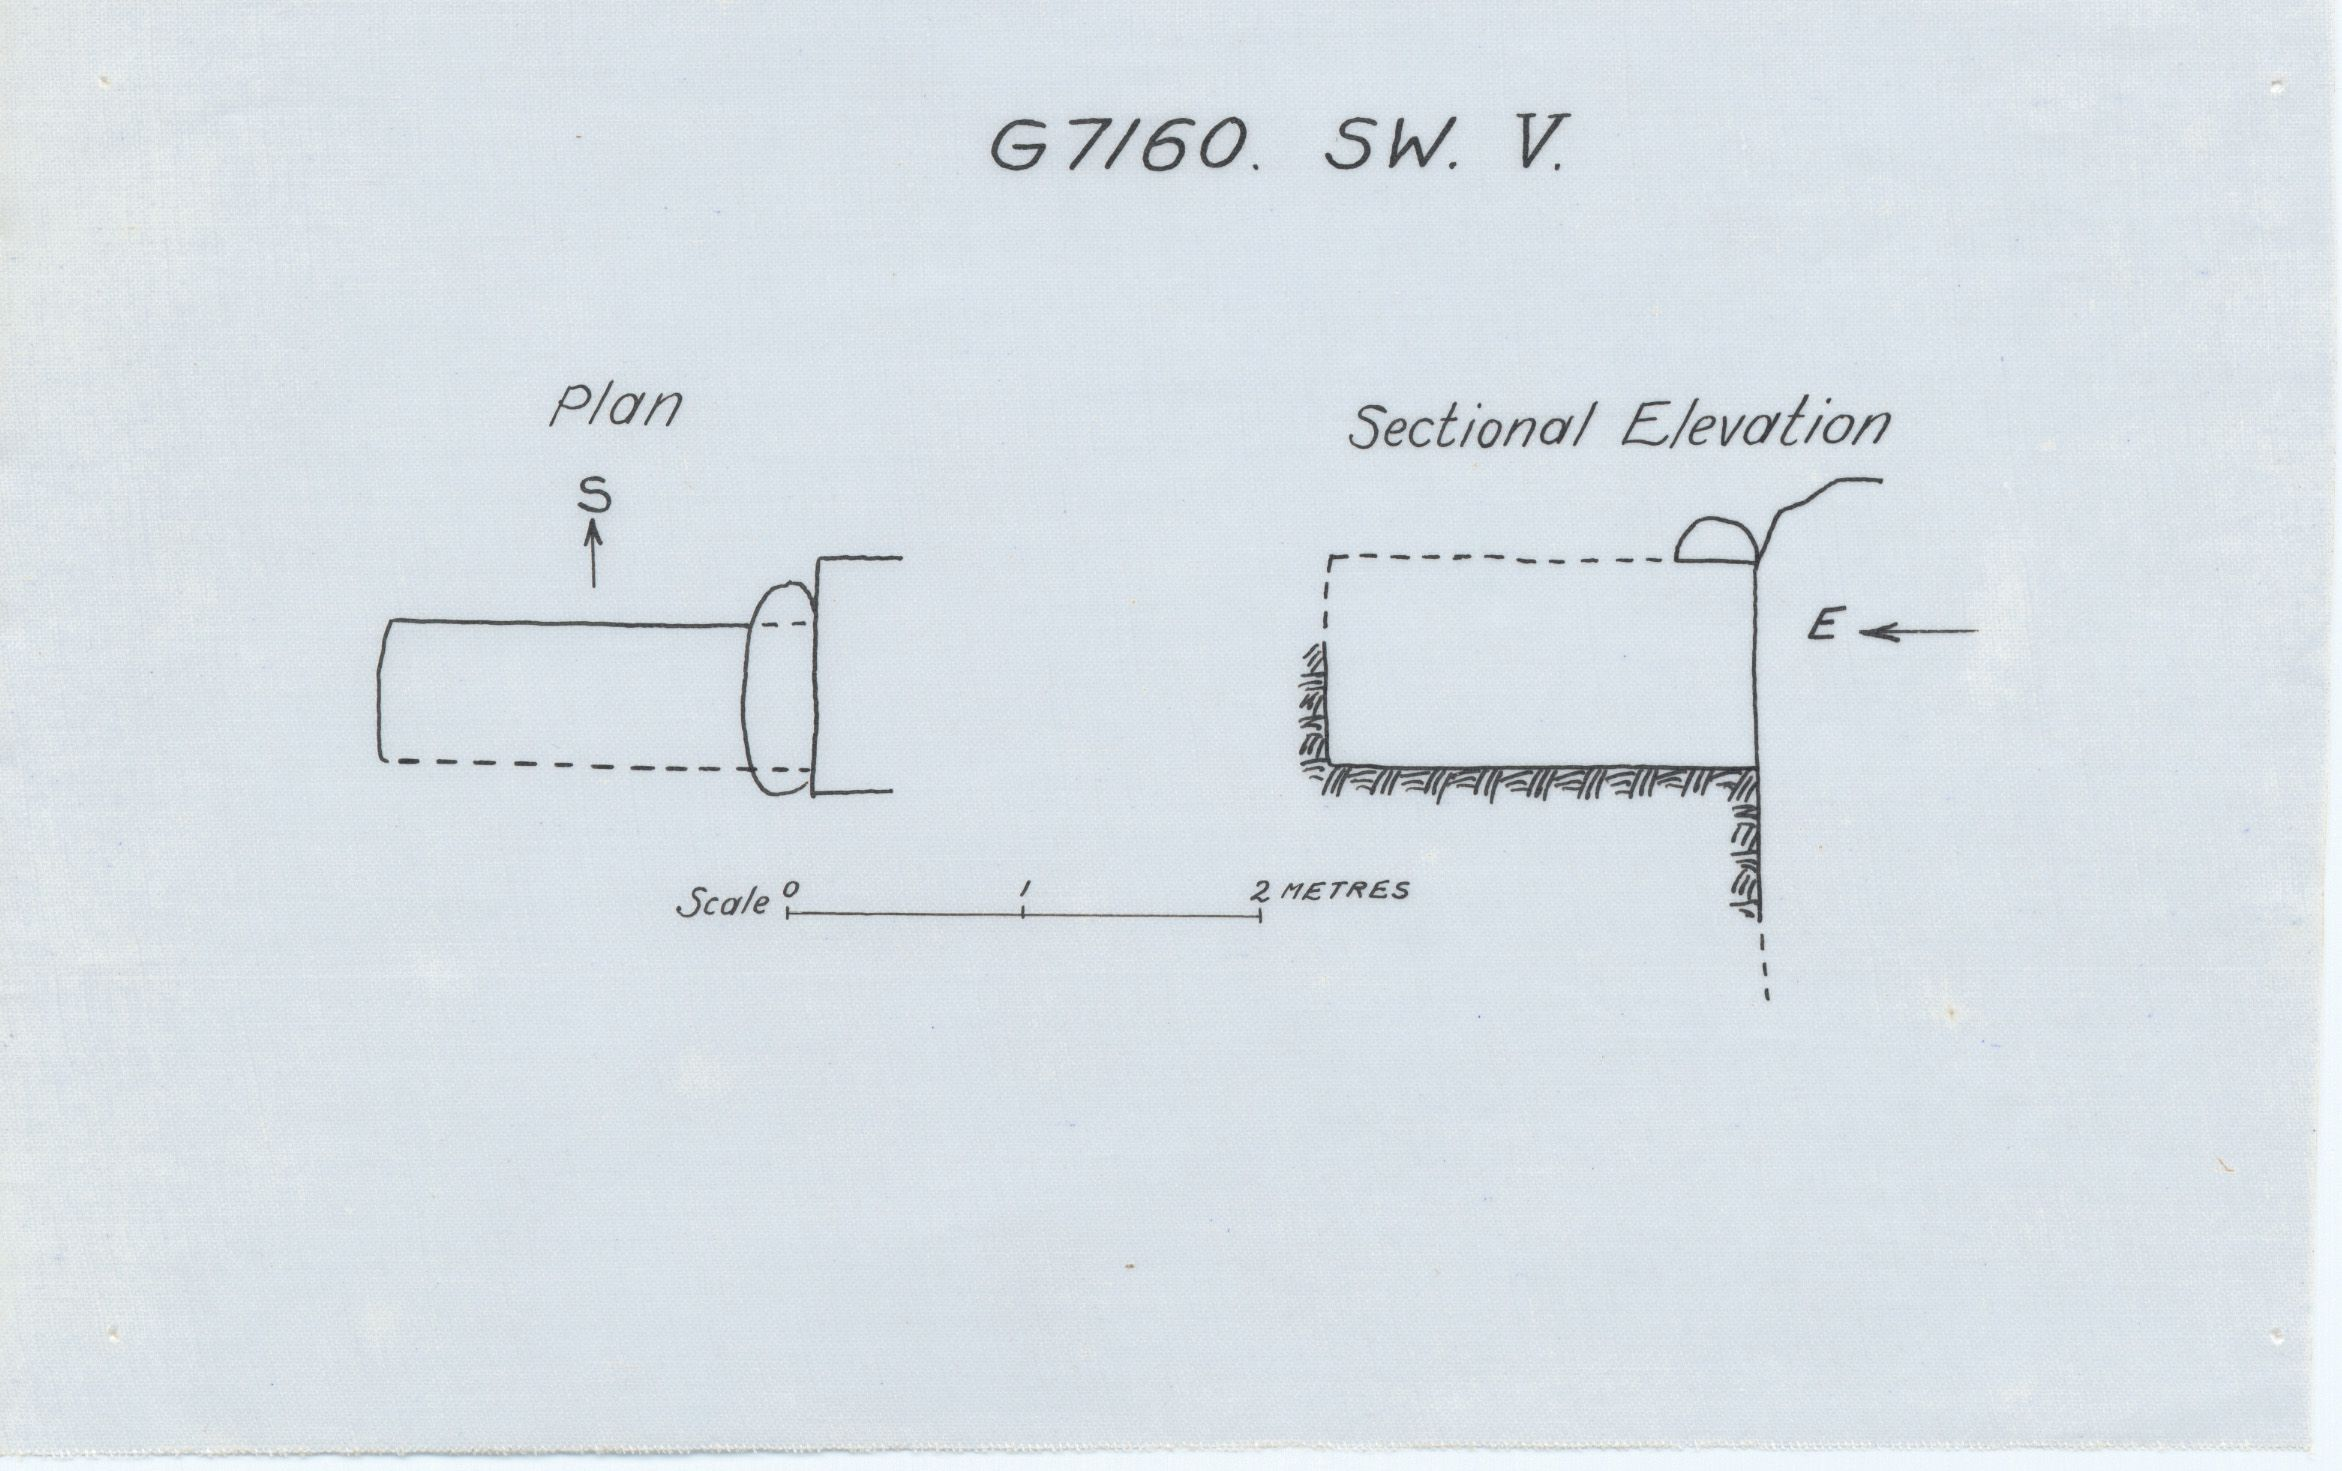 Maps and plans: G 7100 SW 5